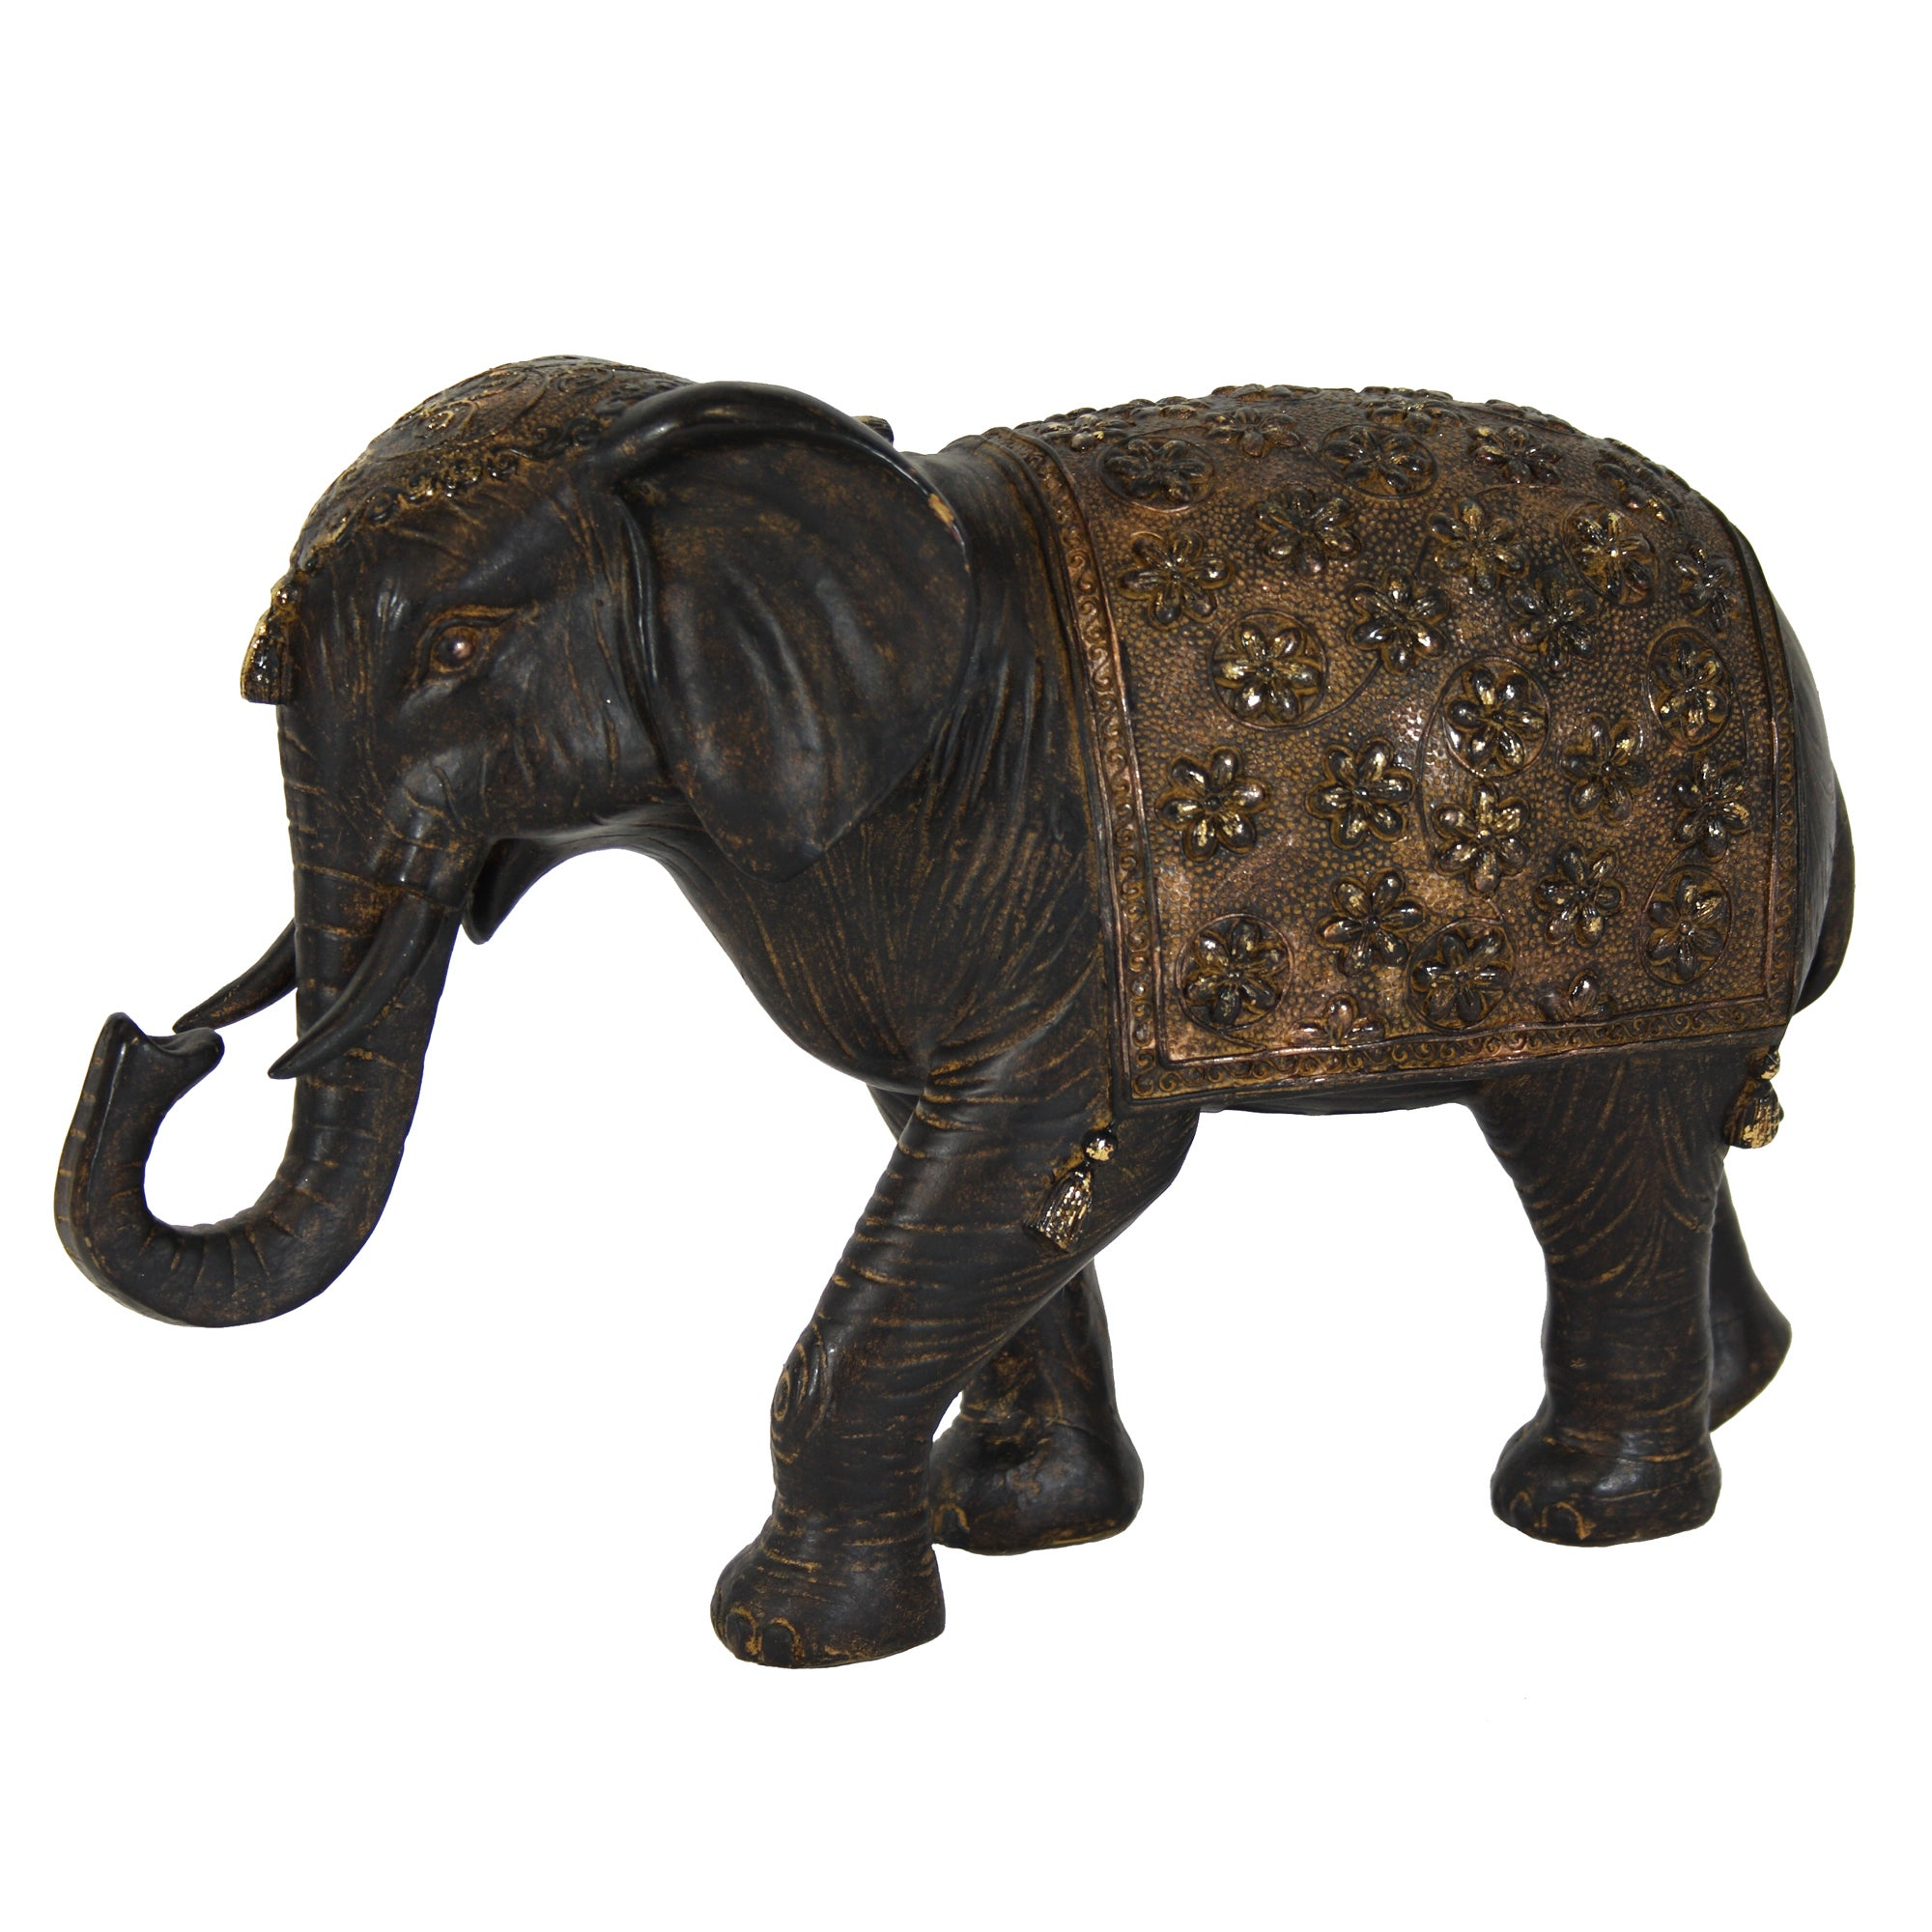 Burnt Sienna Collection Elephant Ornament